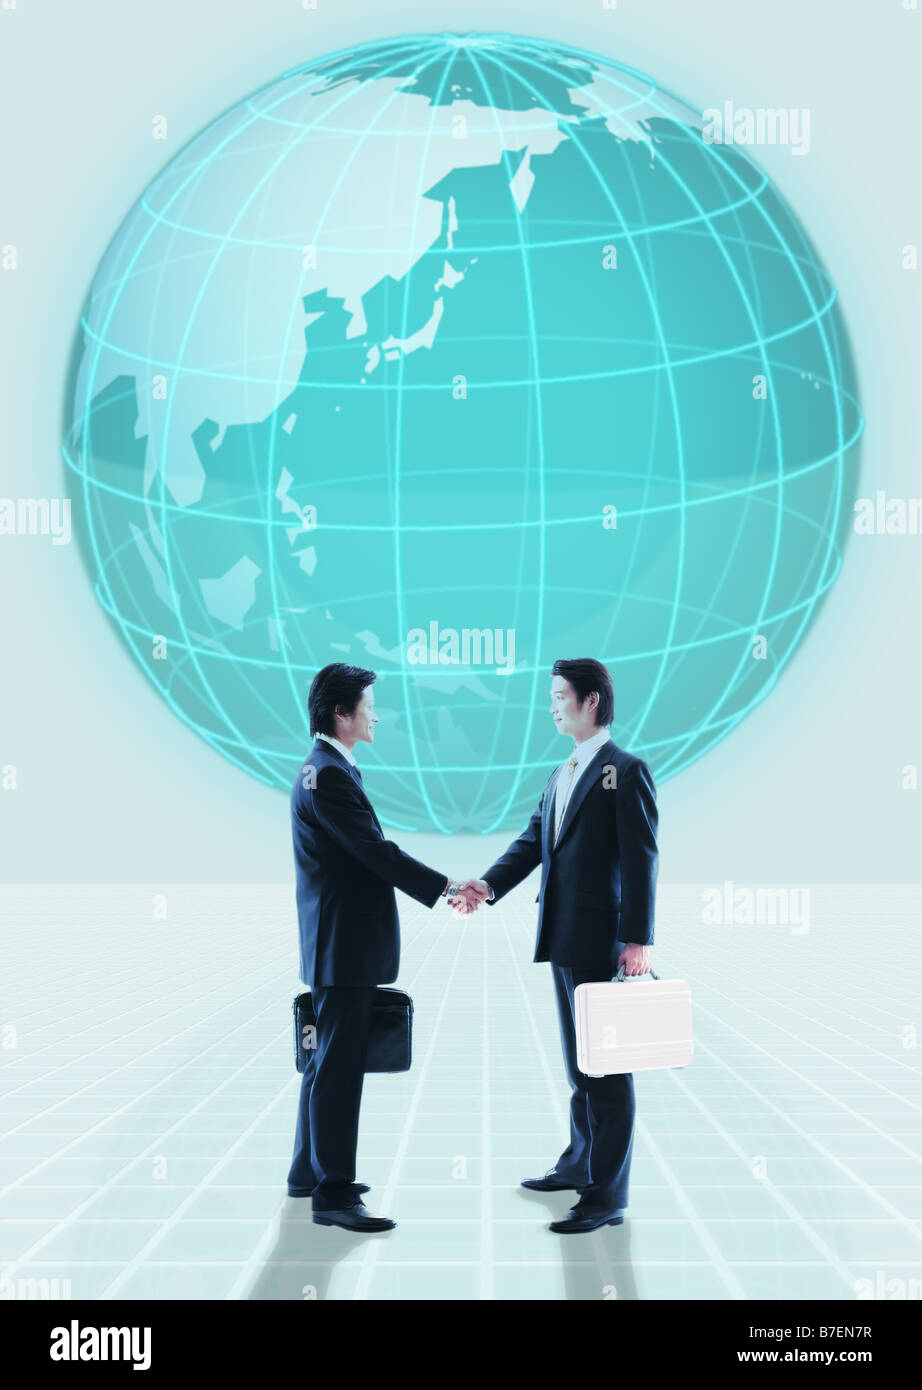 Image of global business relation - Stock Image